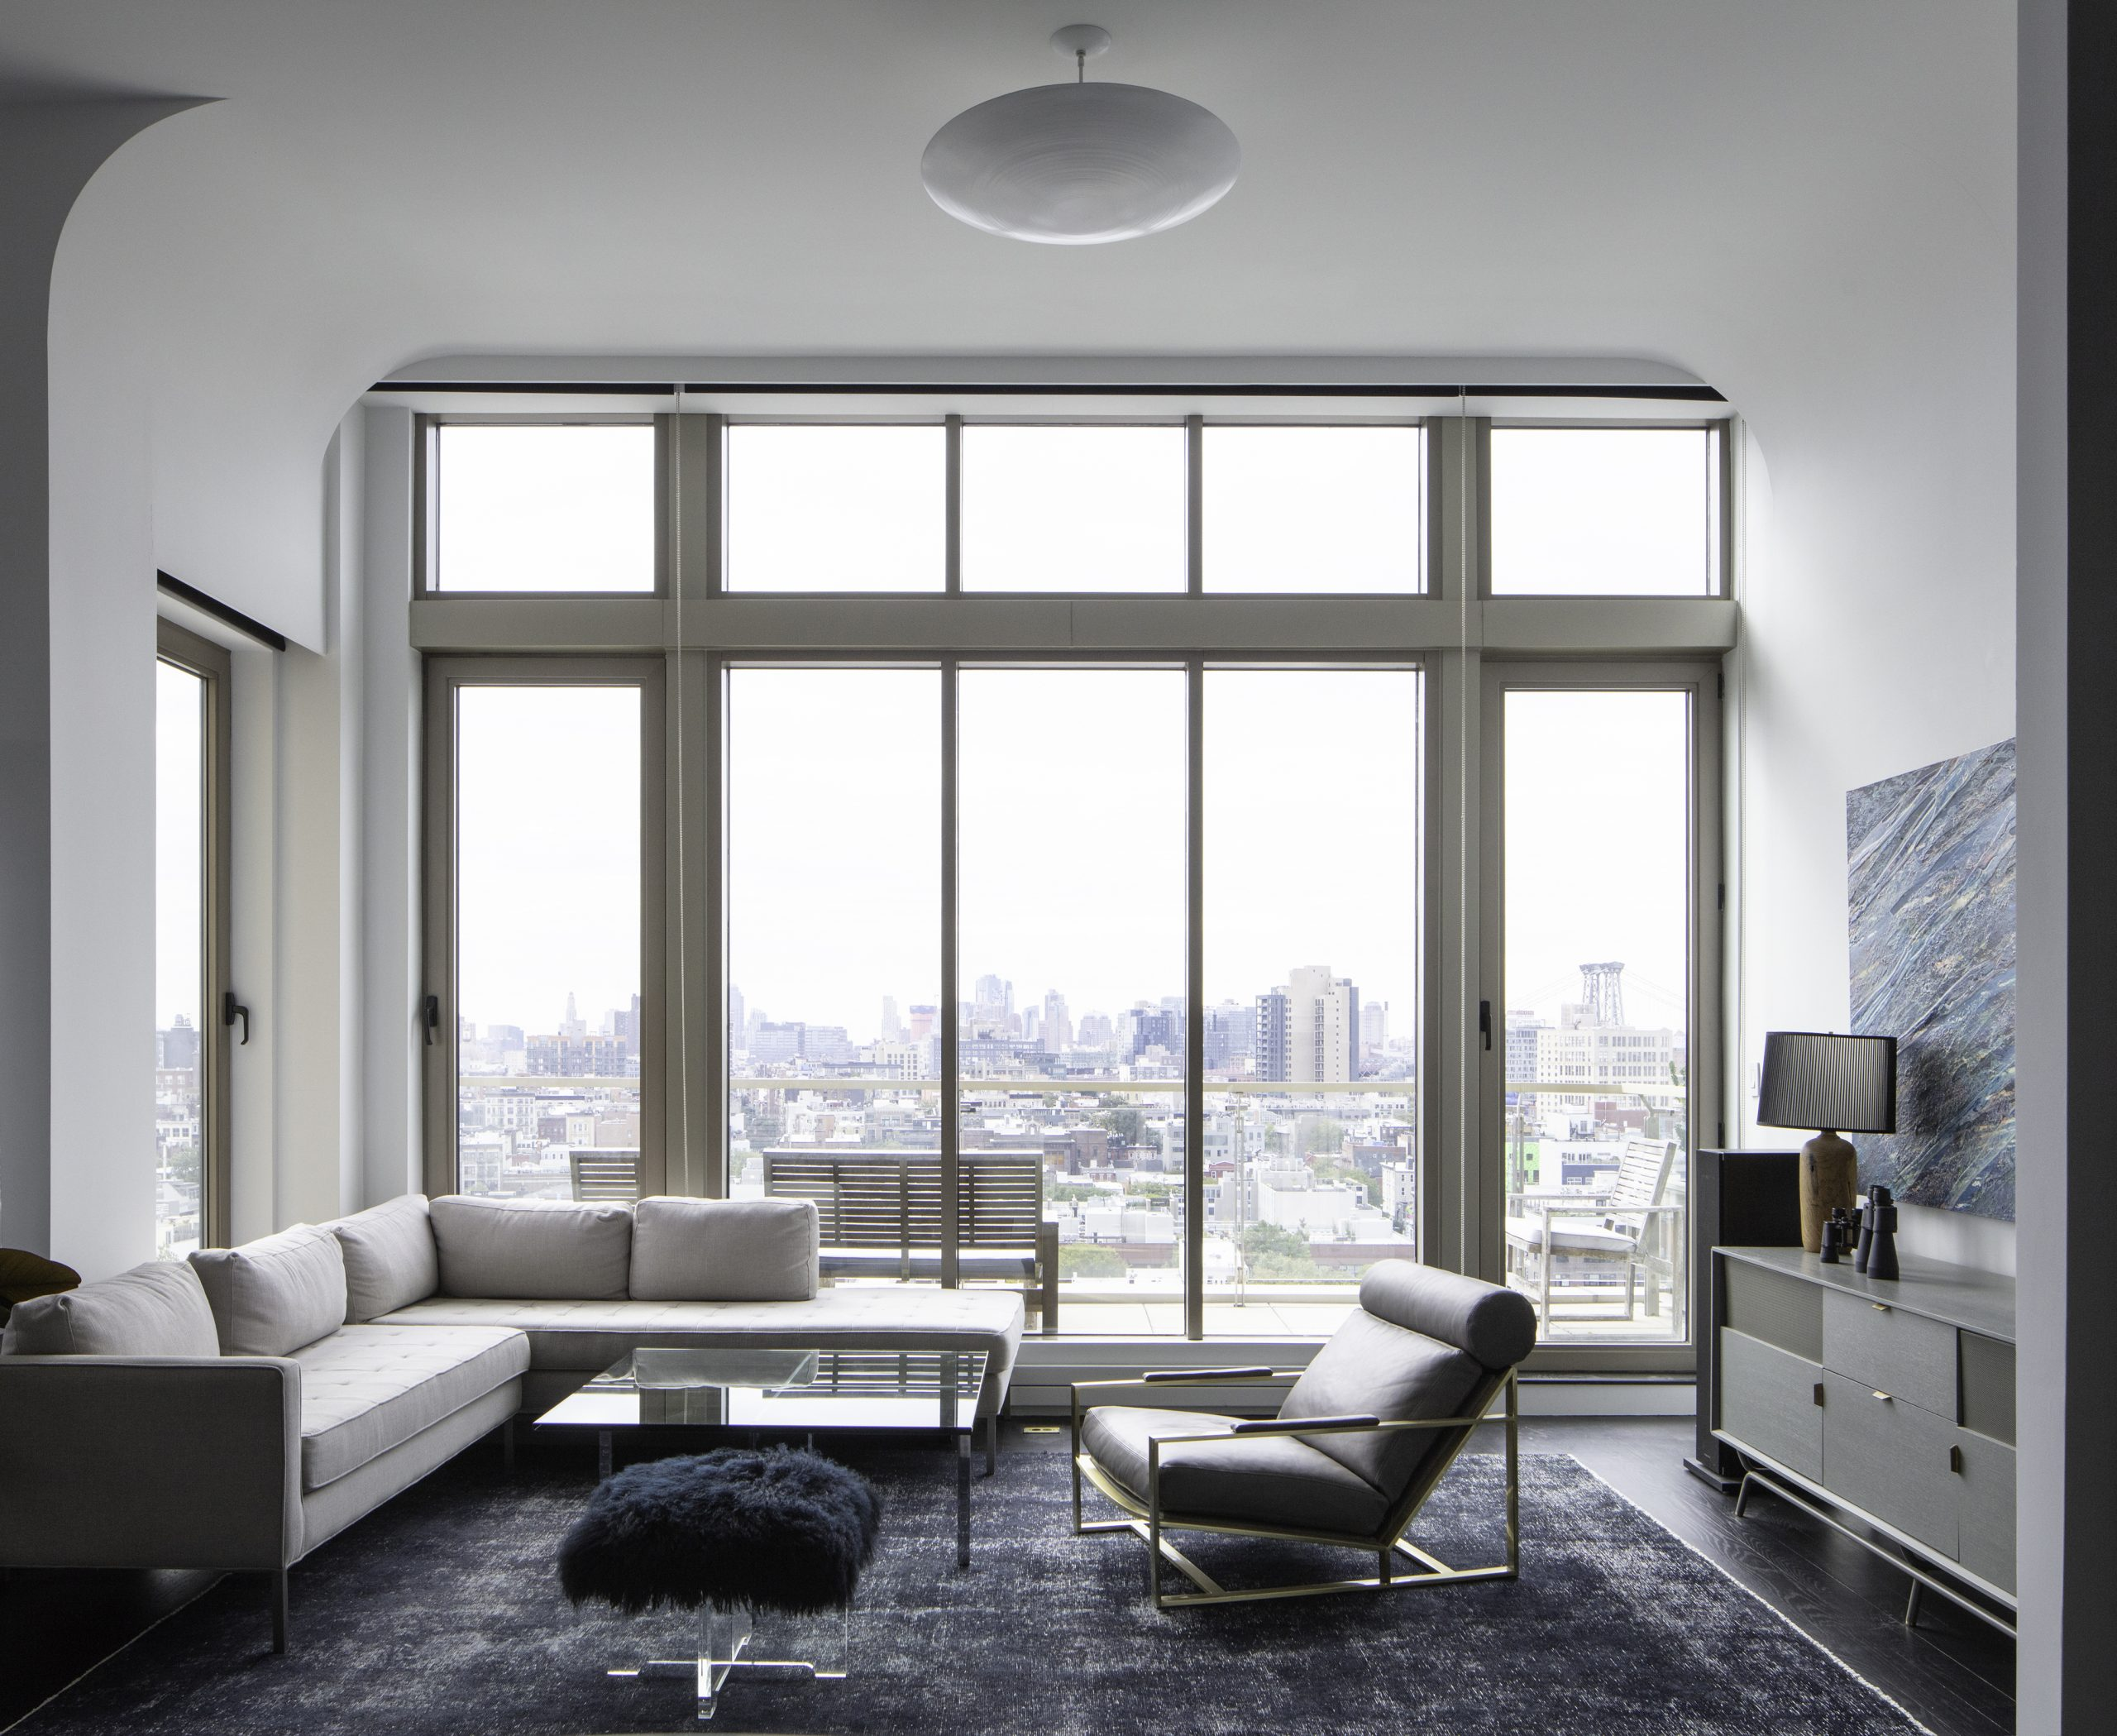 Photo of high-rise apartment interior